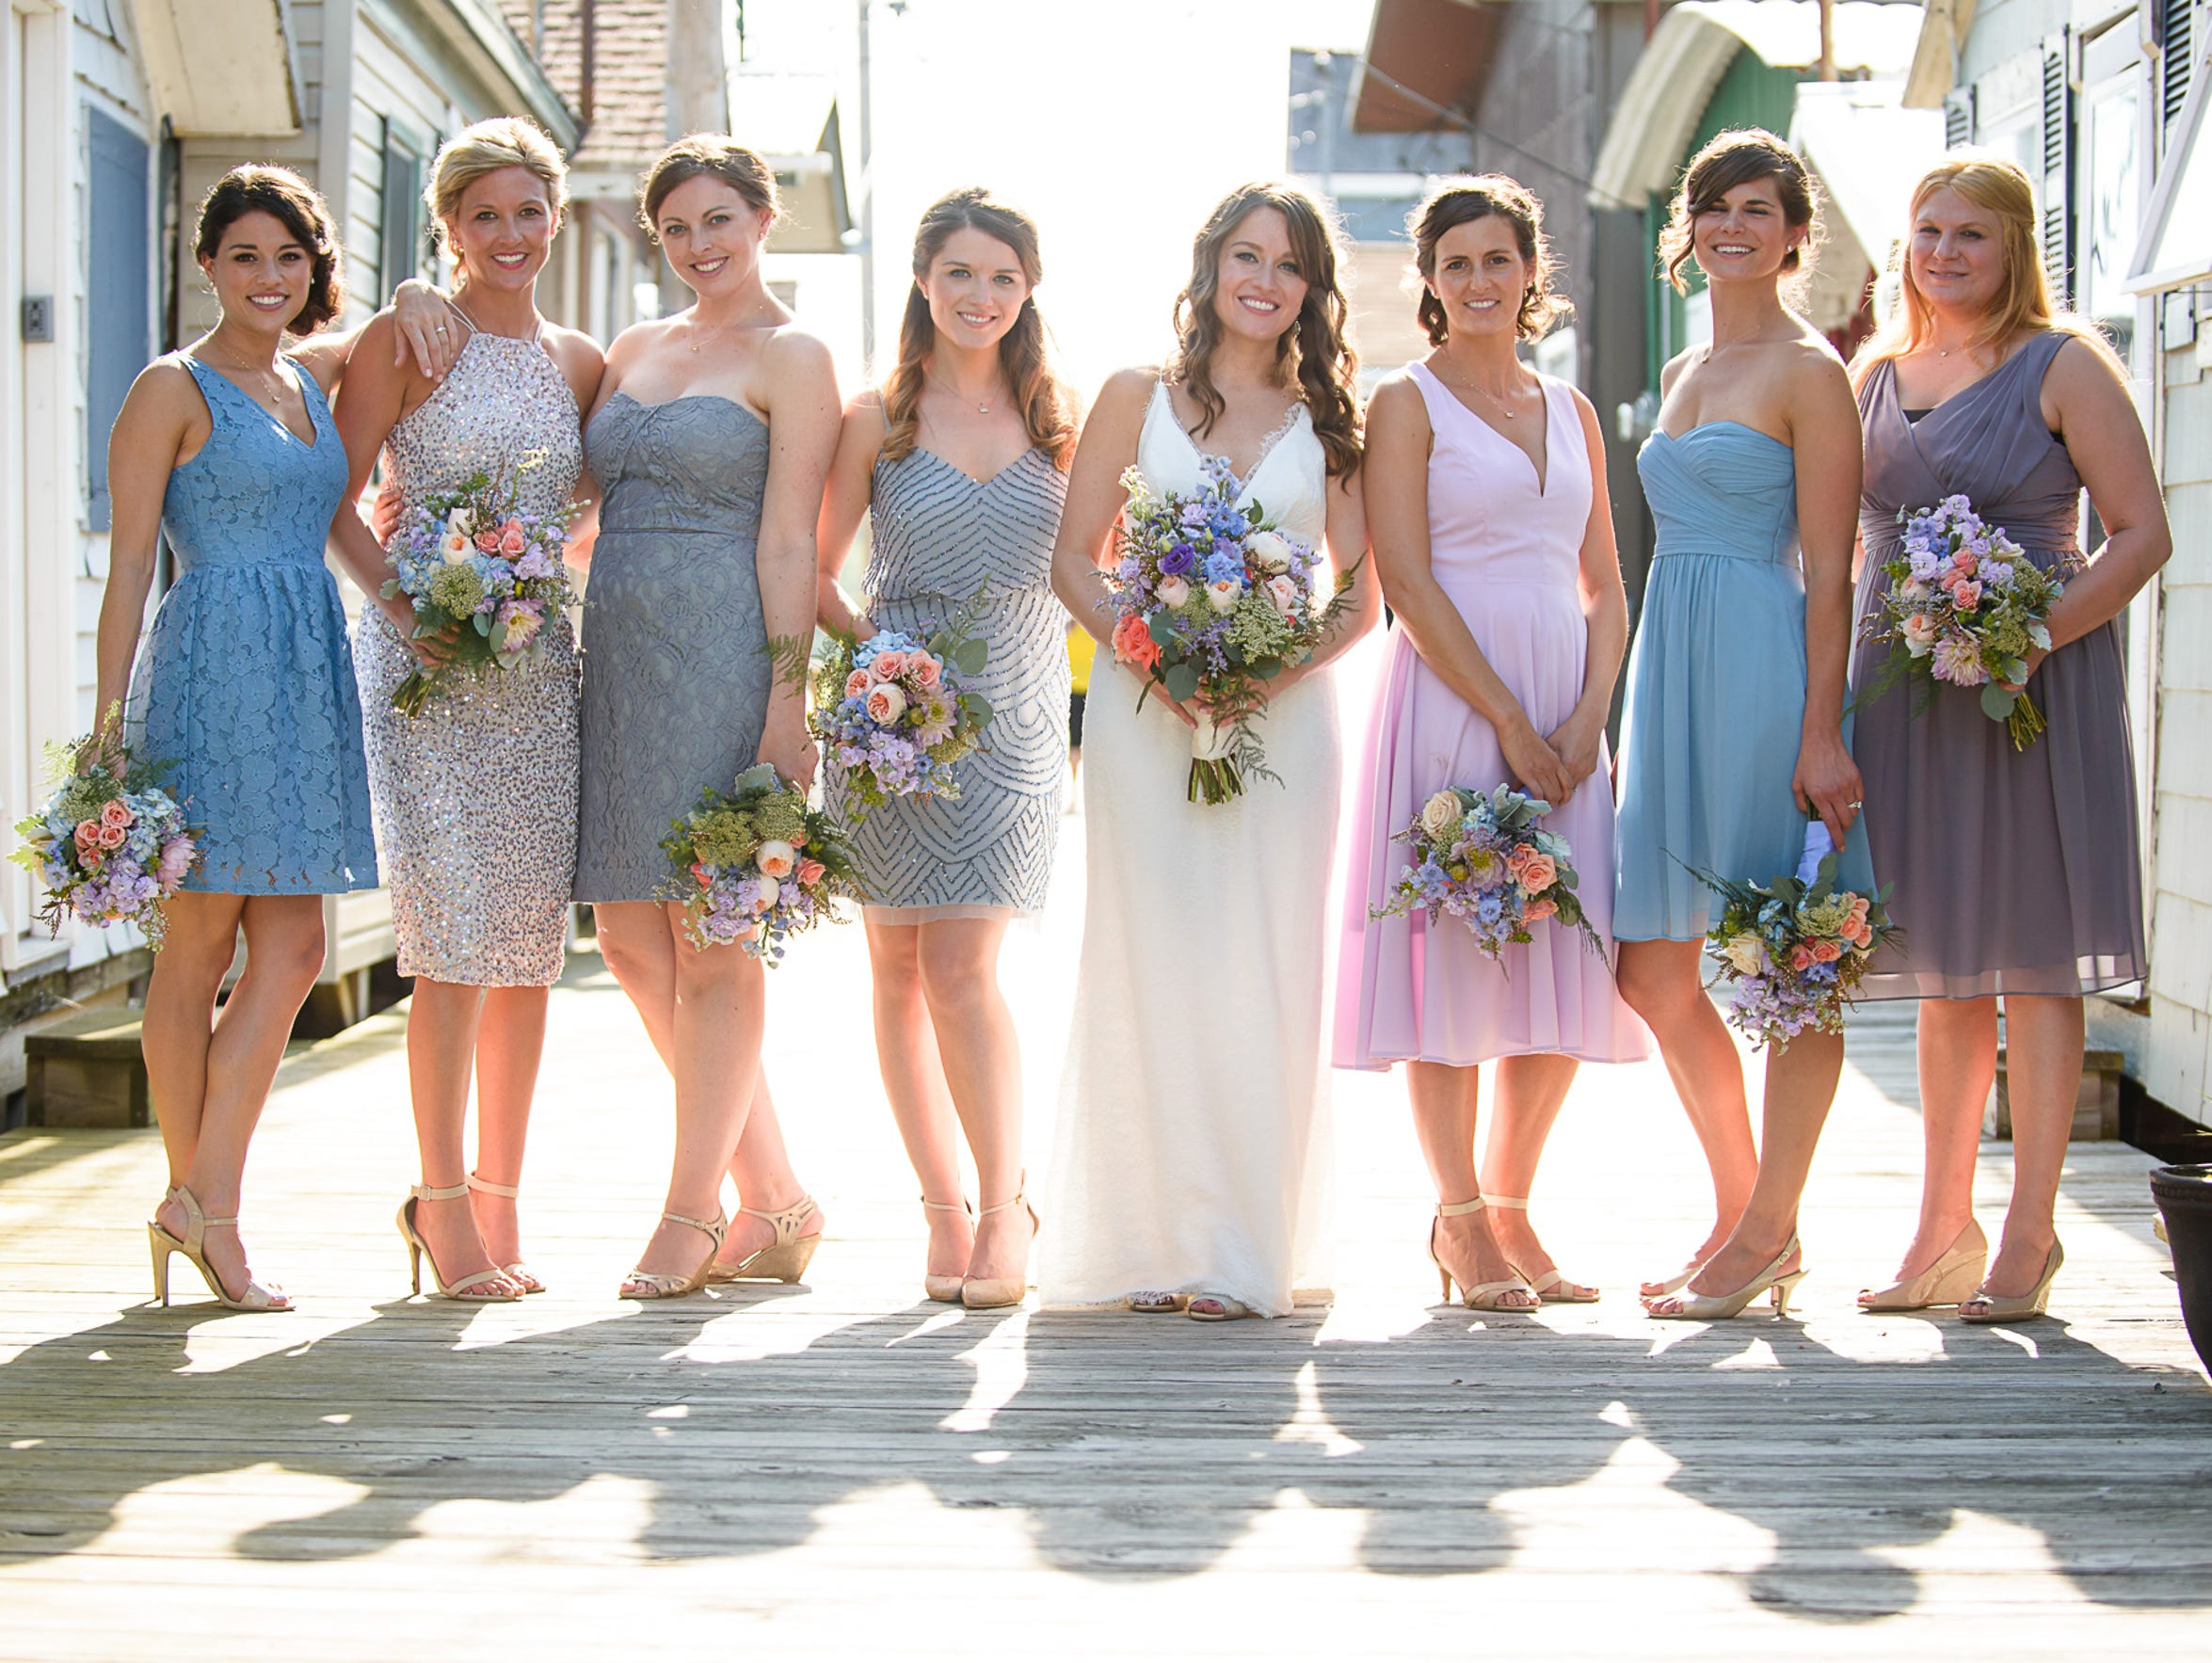 Top rochester wedding trends for 2017 mix and match bridesmaid dresses ombrellifo Image collections